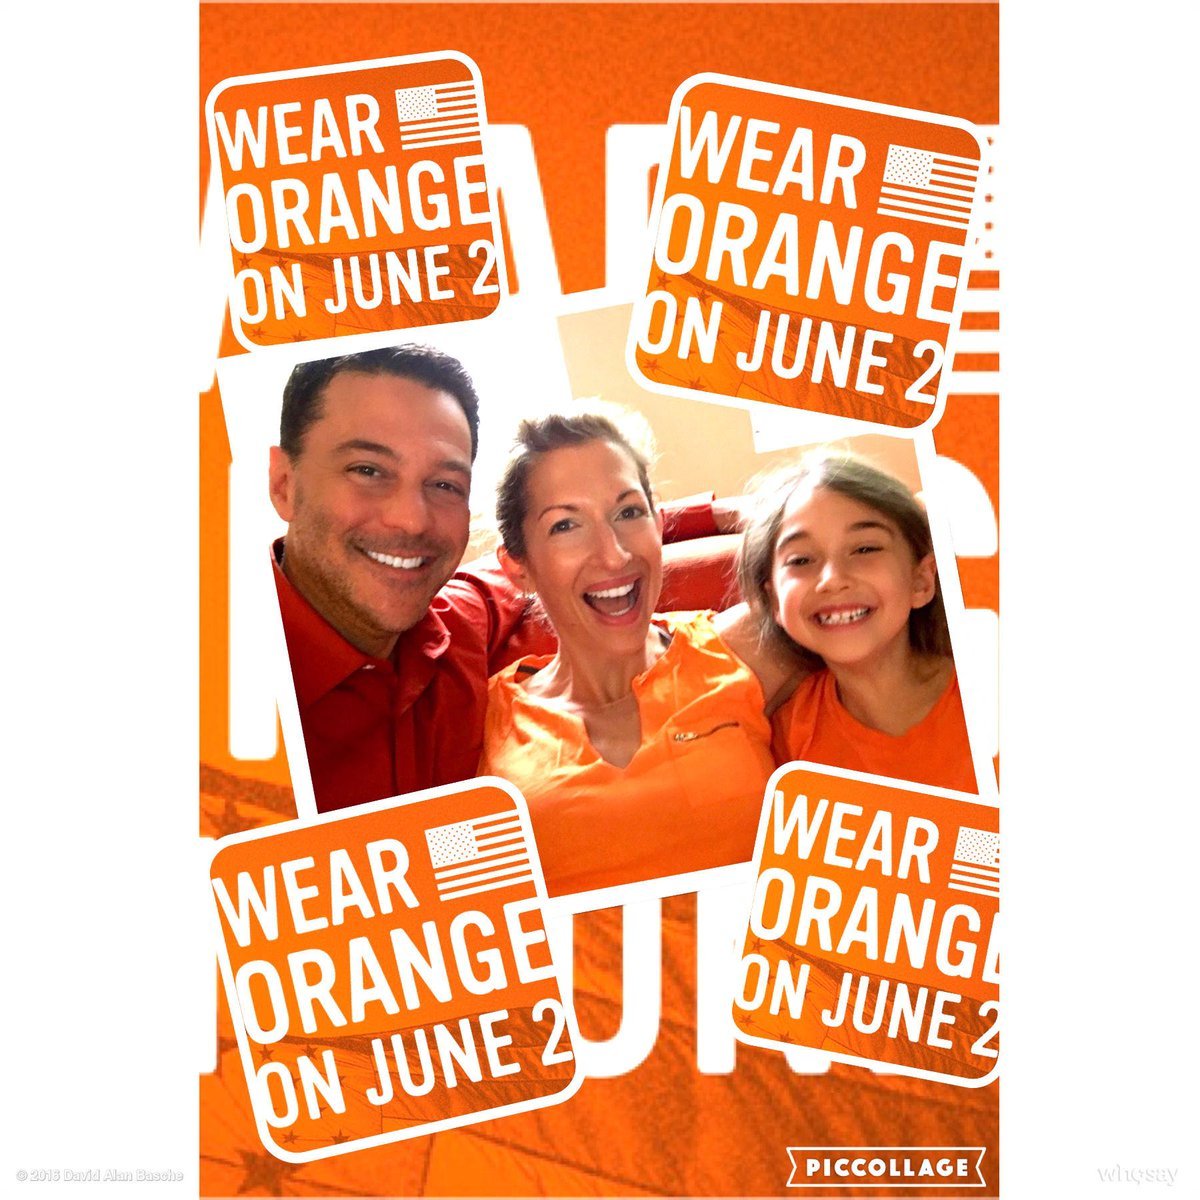 Our family stands with @everytown today and every day to end gun violence @alysiareiner @momsdemand #WearOrange https://t.co/7gL2s2TZ0s